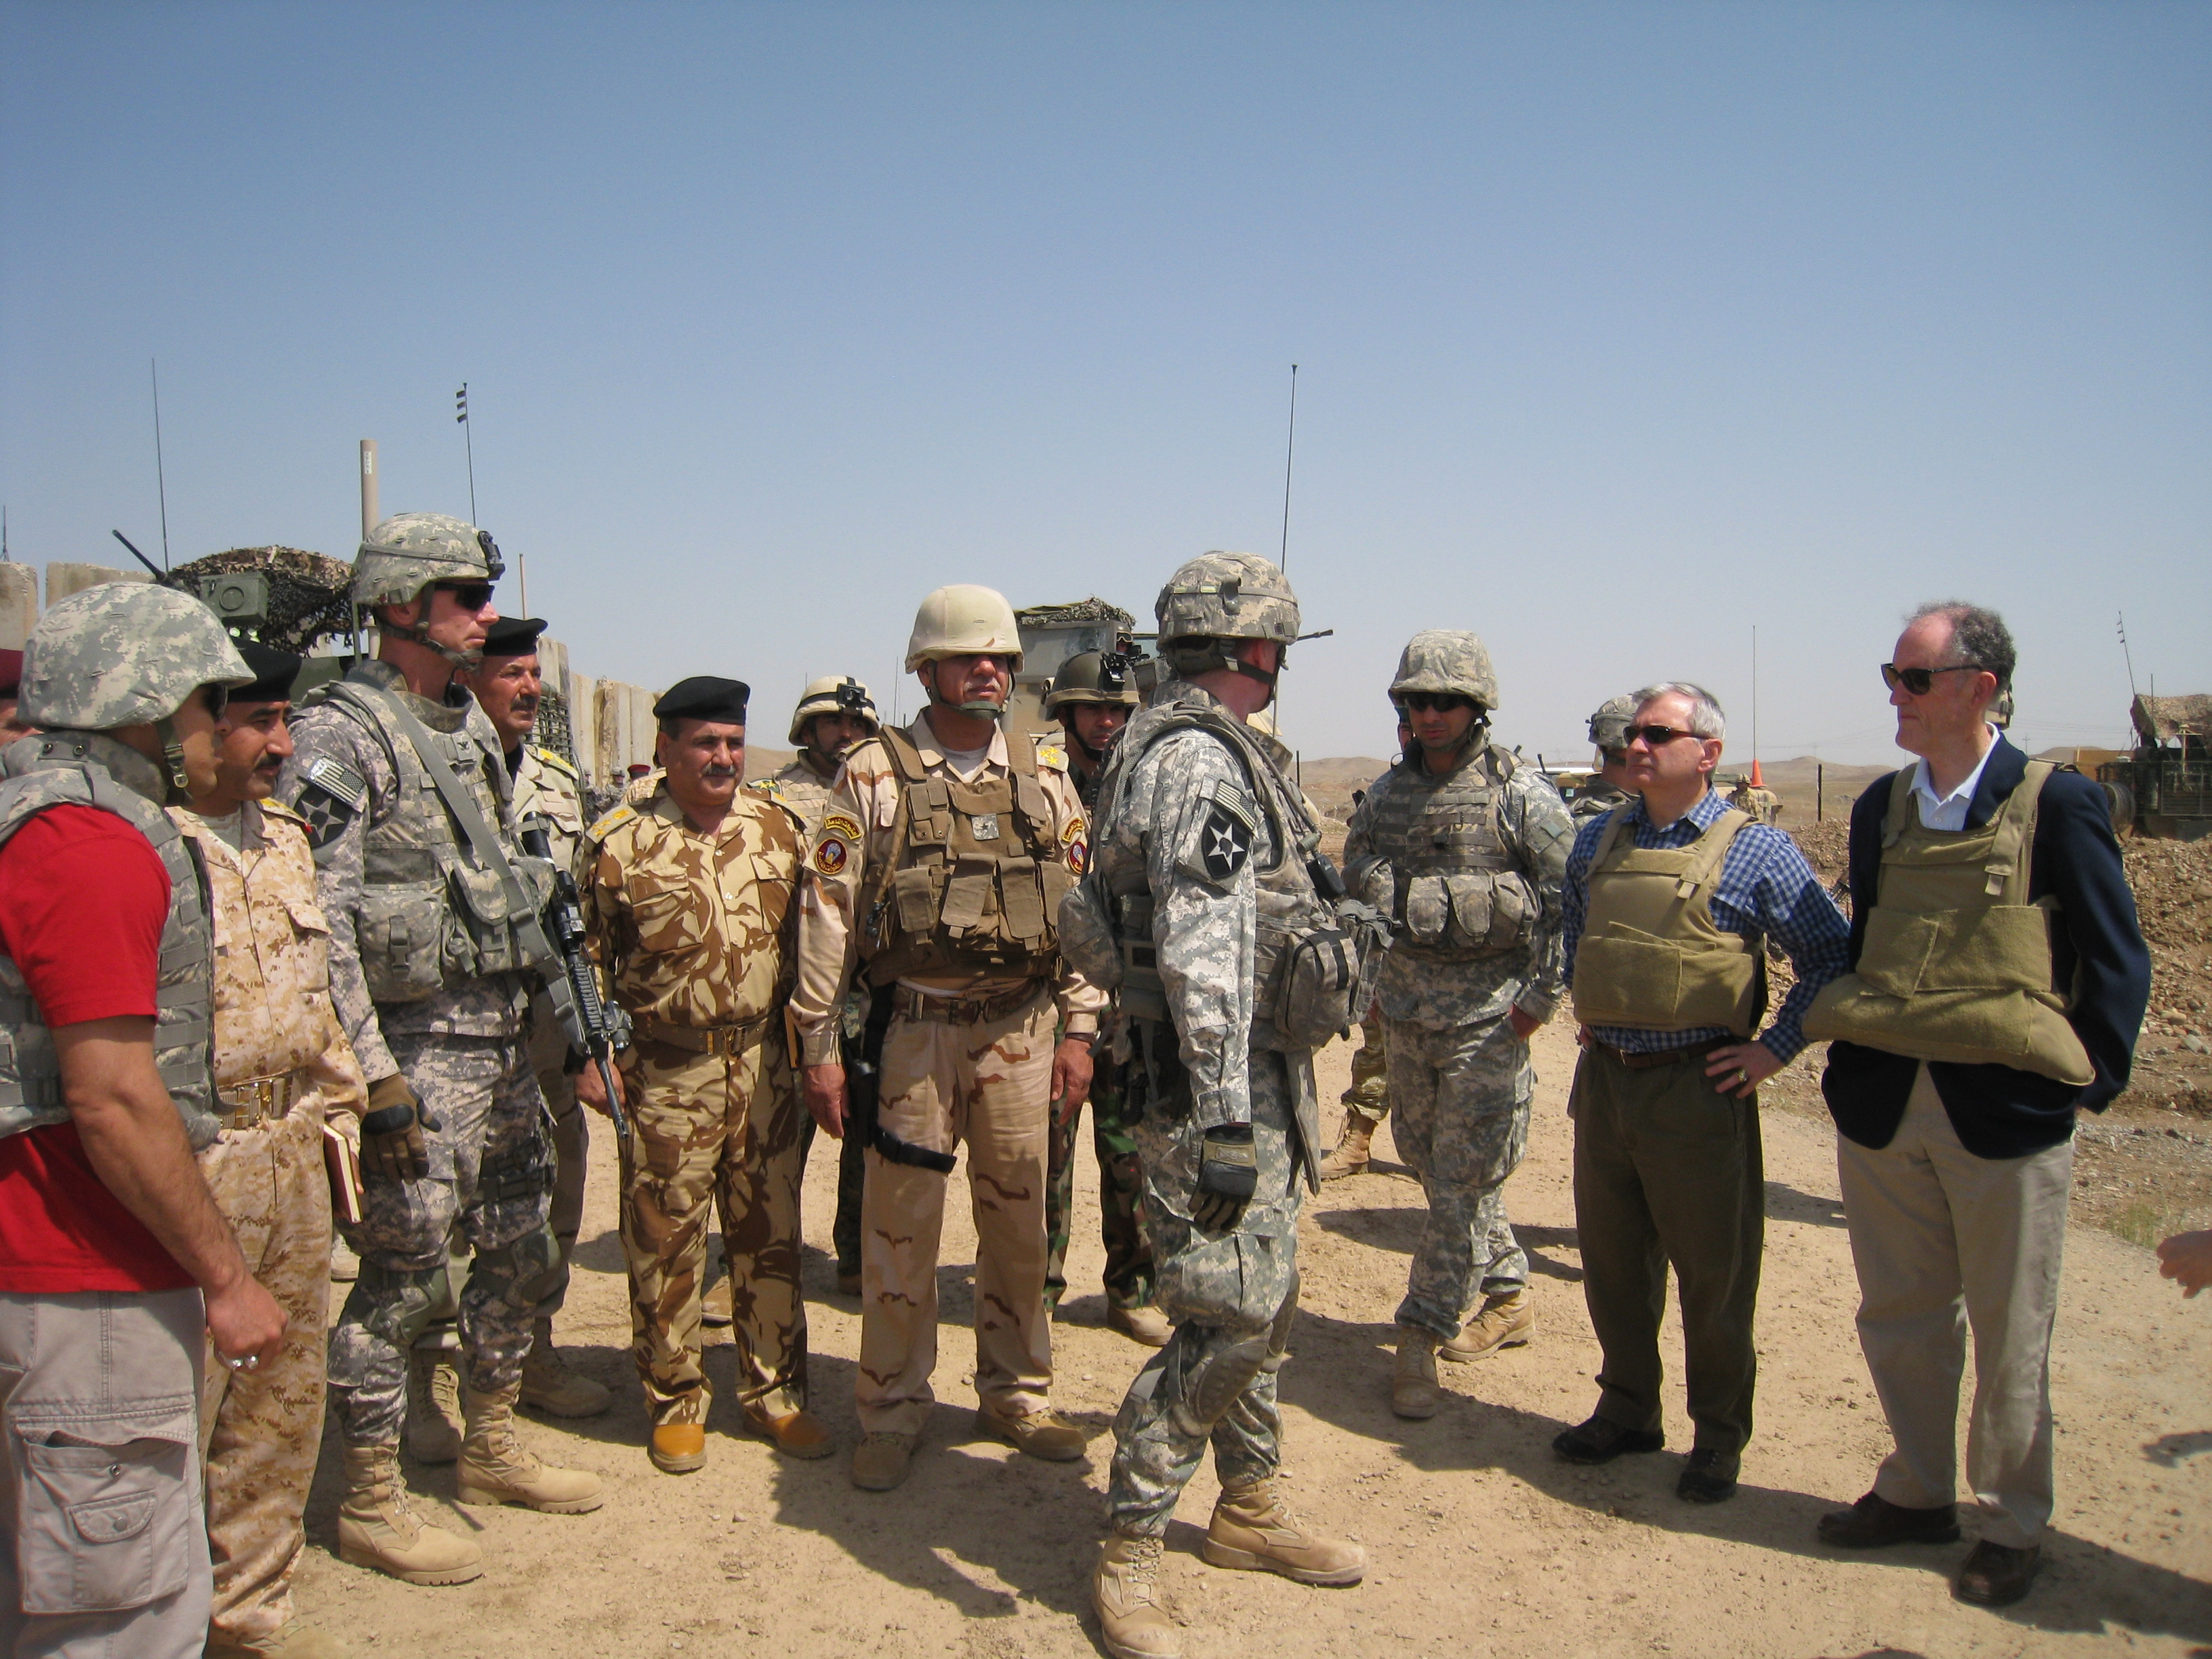 Photograph with troops in Iraq, 2010 March